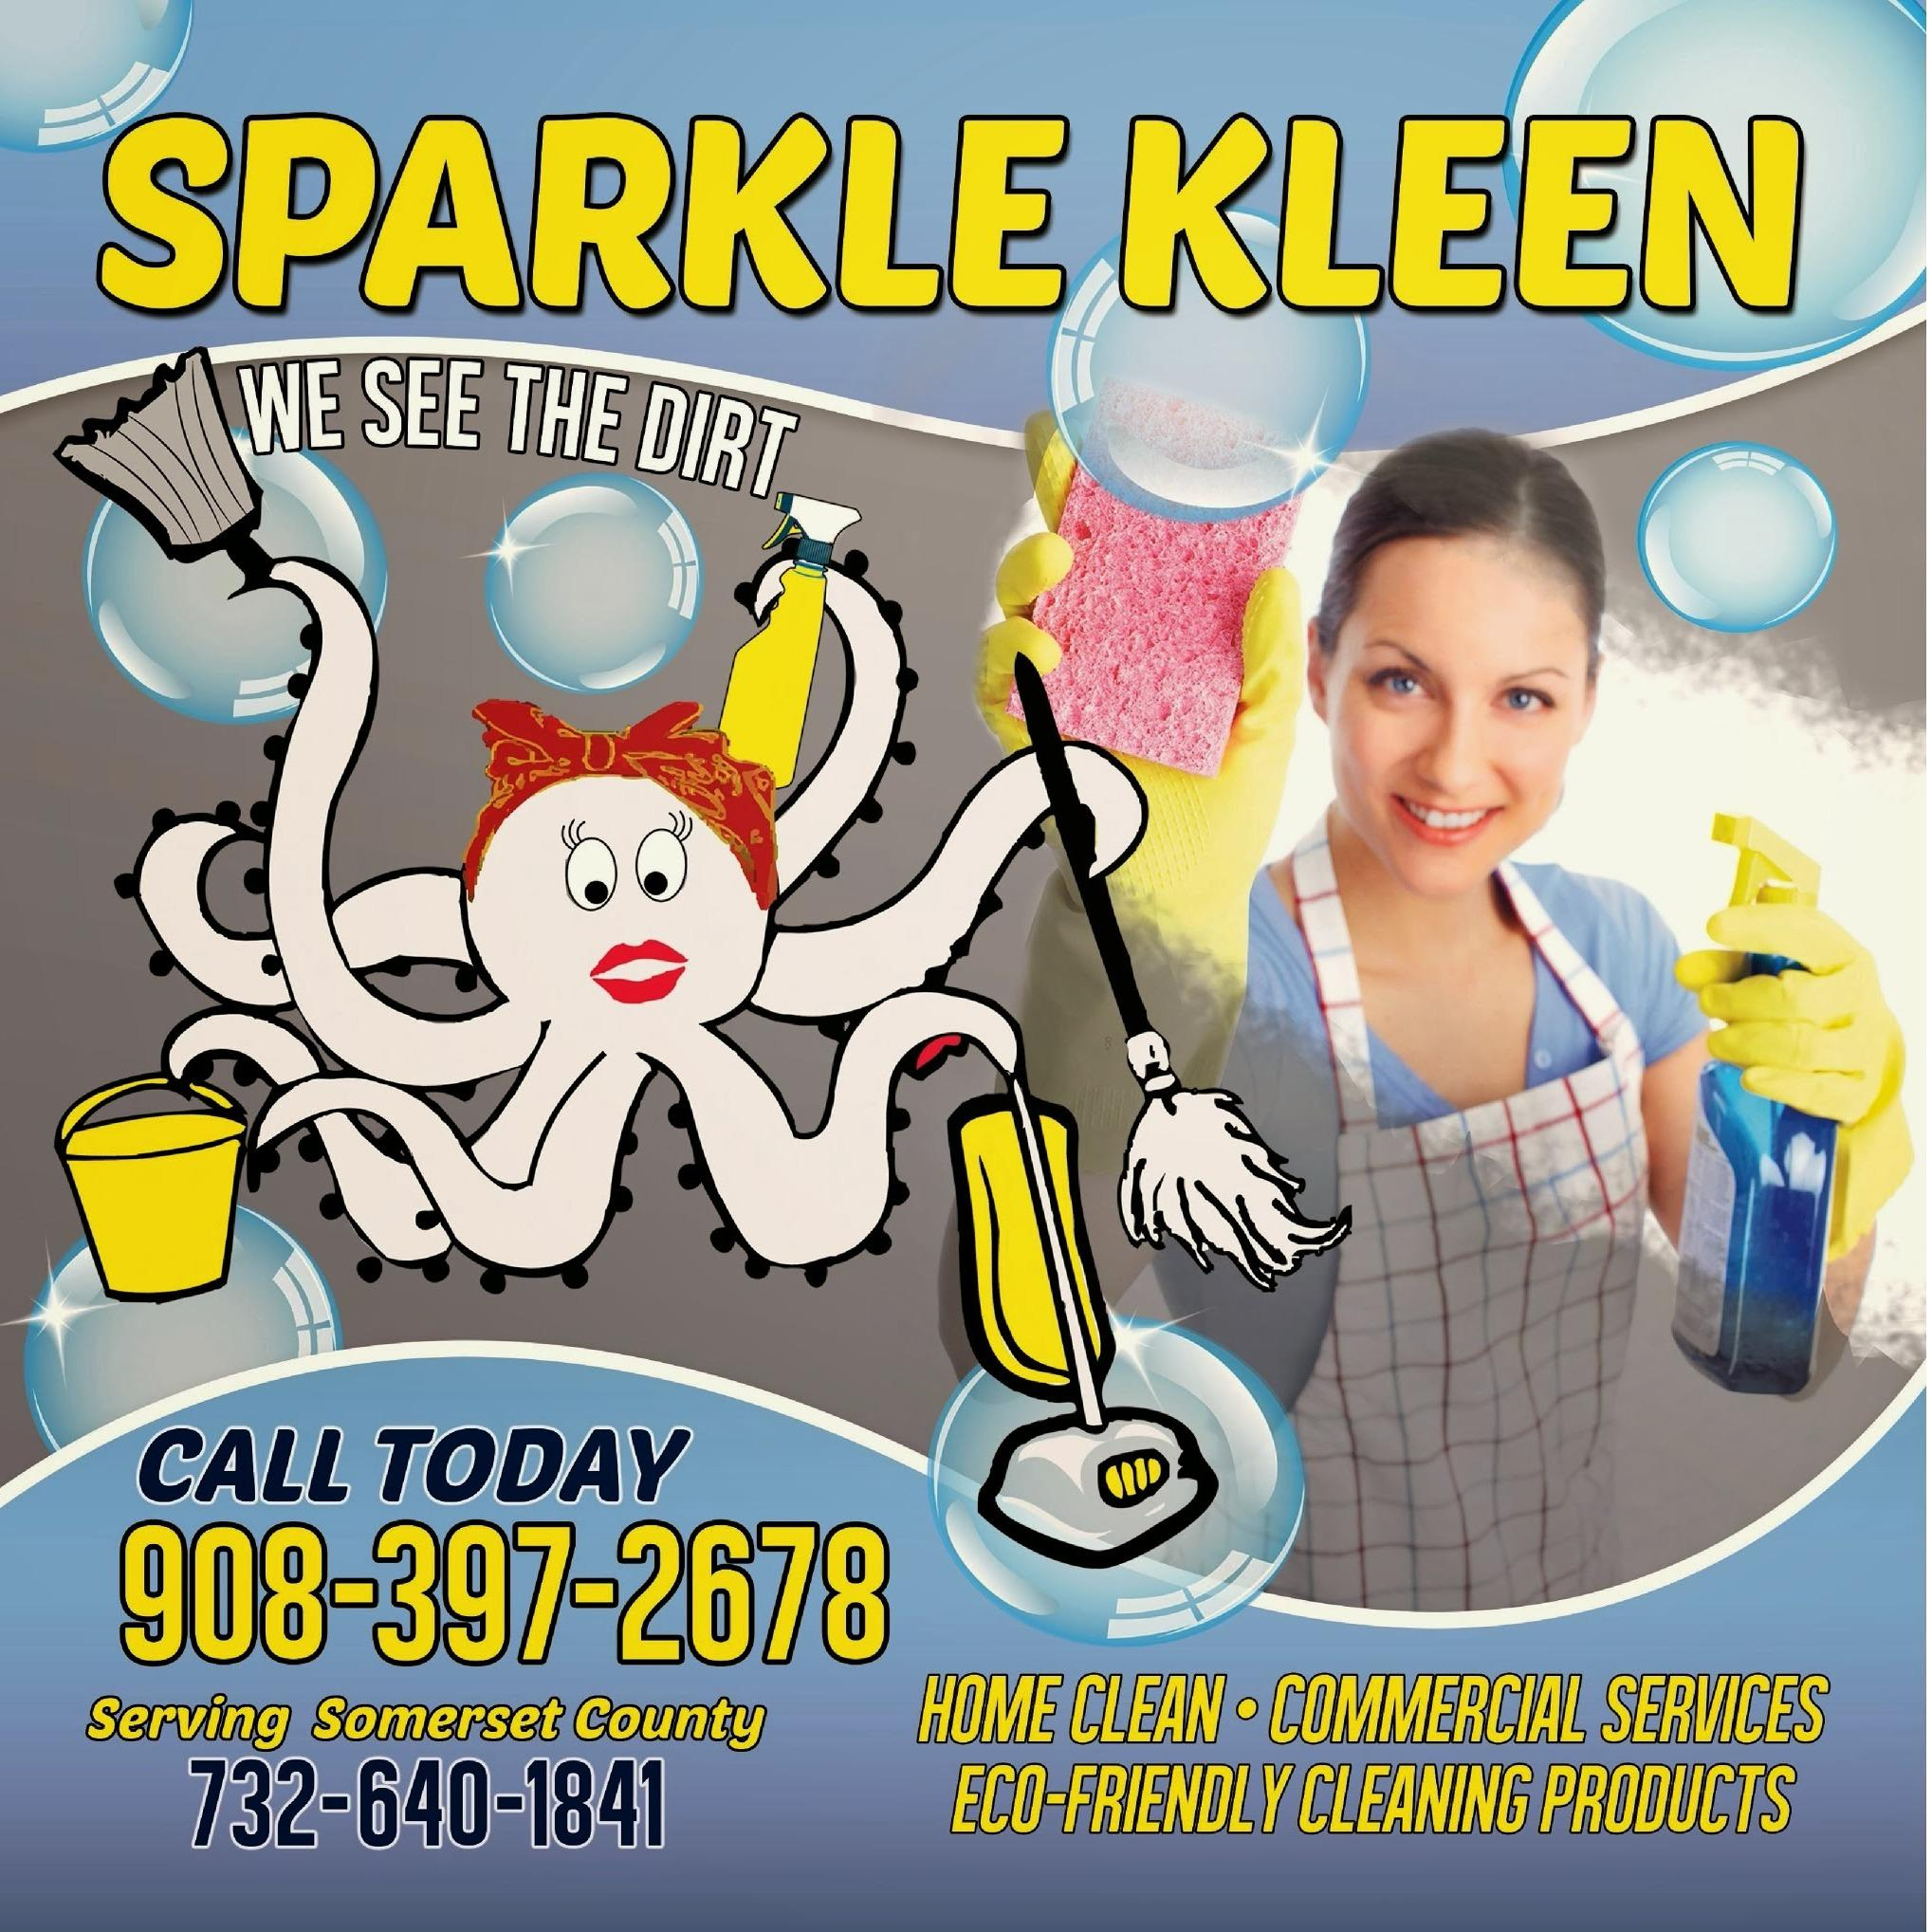 Betty Sparkle cleaning Service image 1